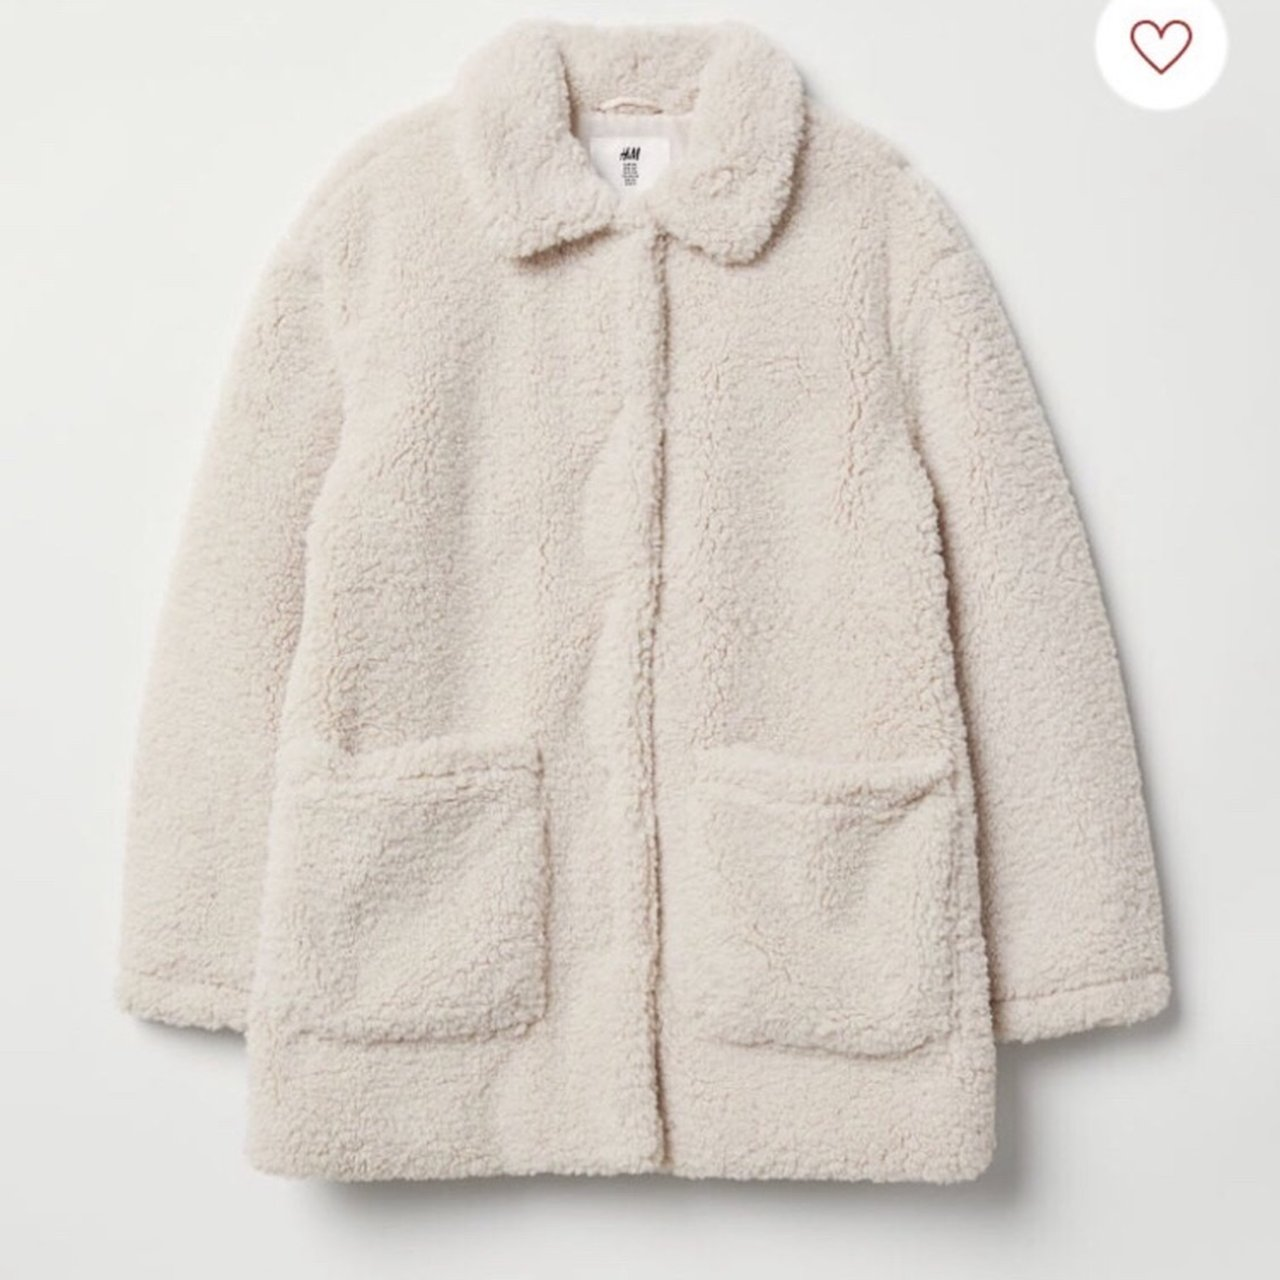 Hm Kids Cream Coat Age 14 Will Fit Sizes 6 10 Depending On Depop